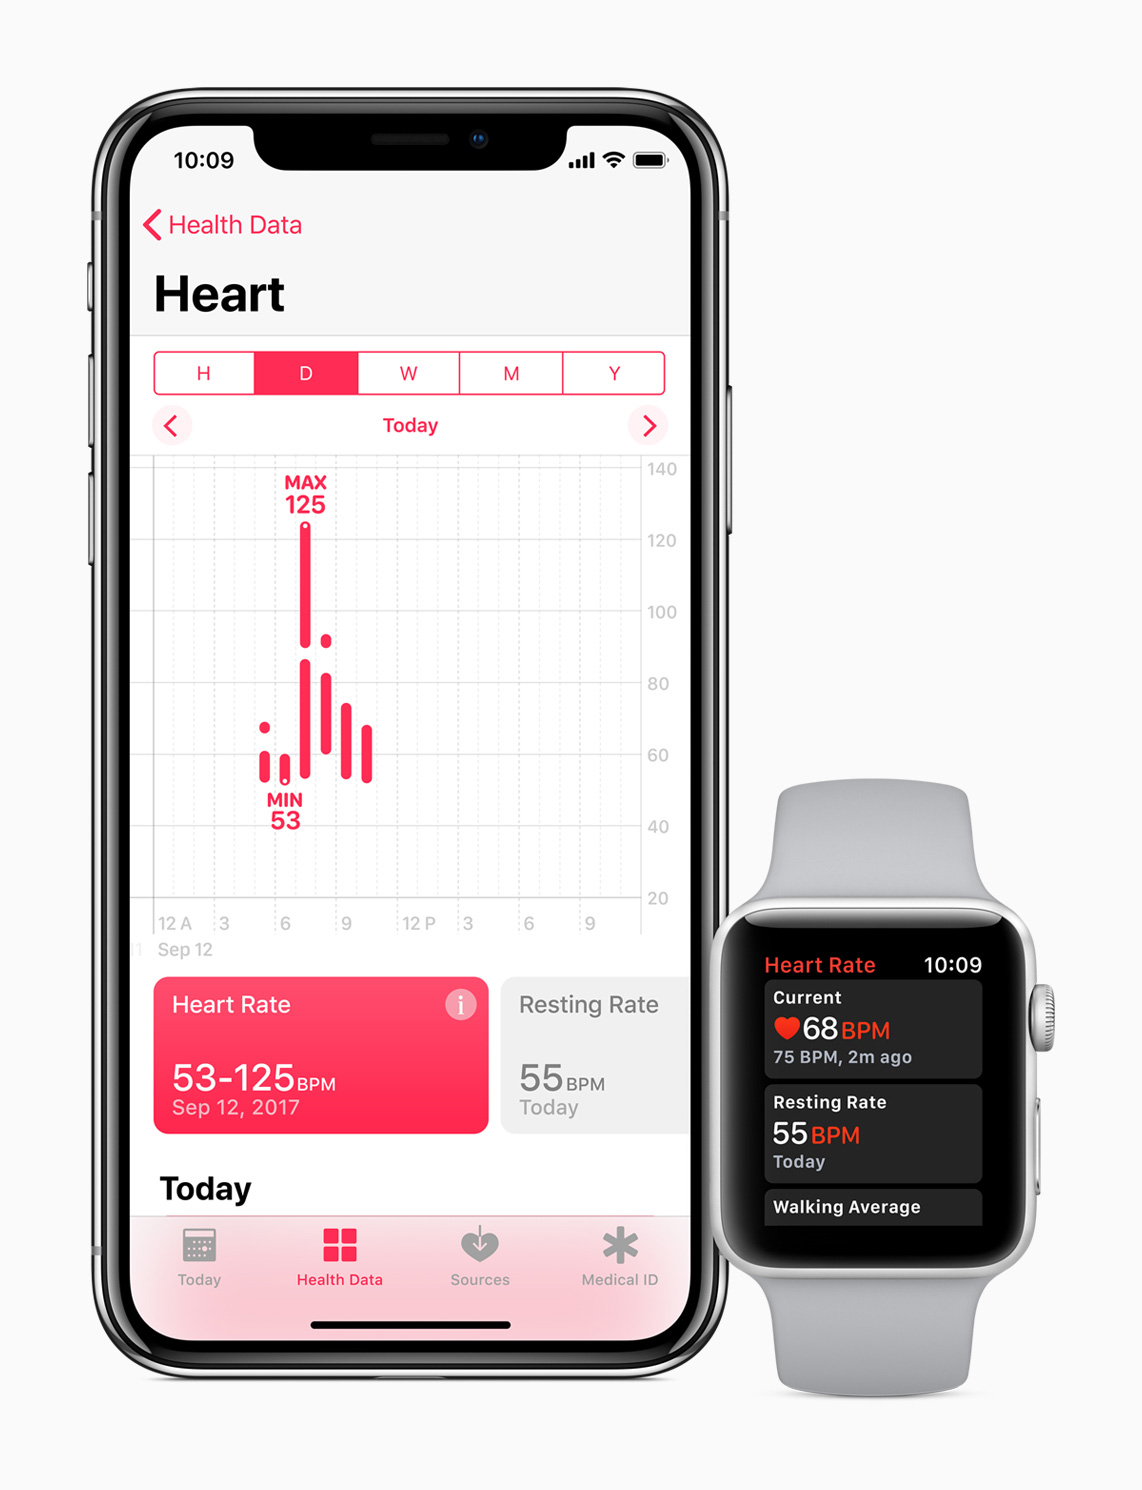 Apple watch series 3 apple watch 3 mobipunkt watch watch series 2 watch sport iphone health siri music airpods